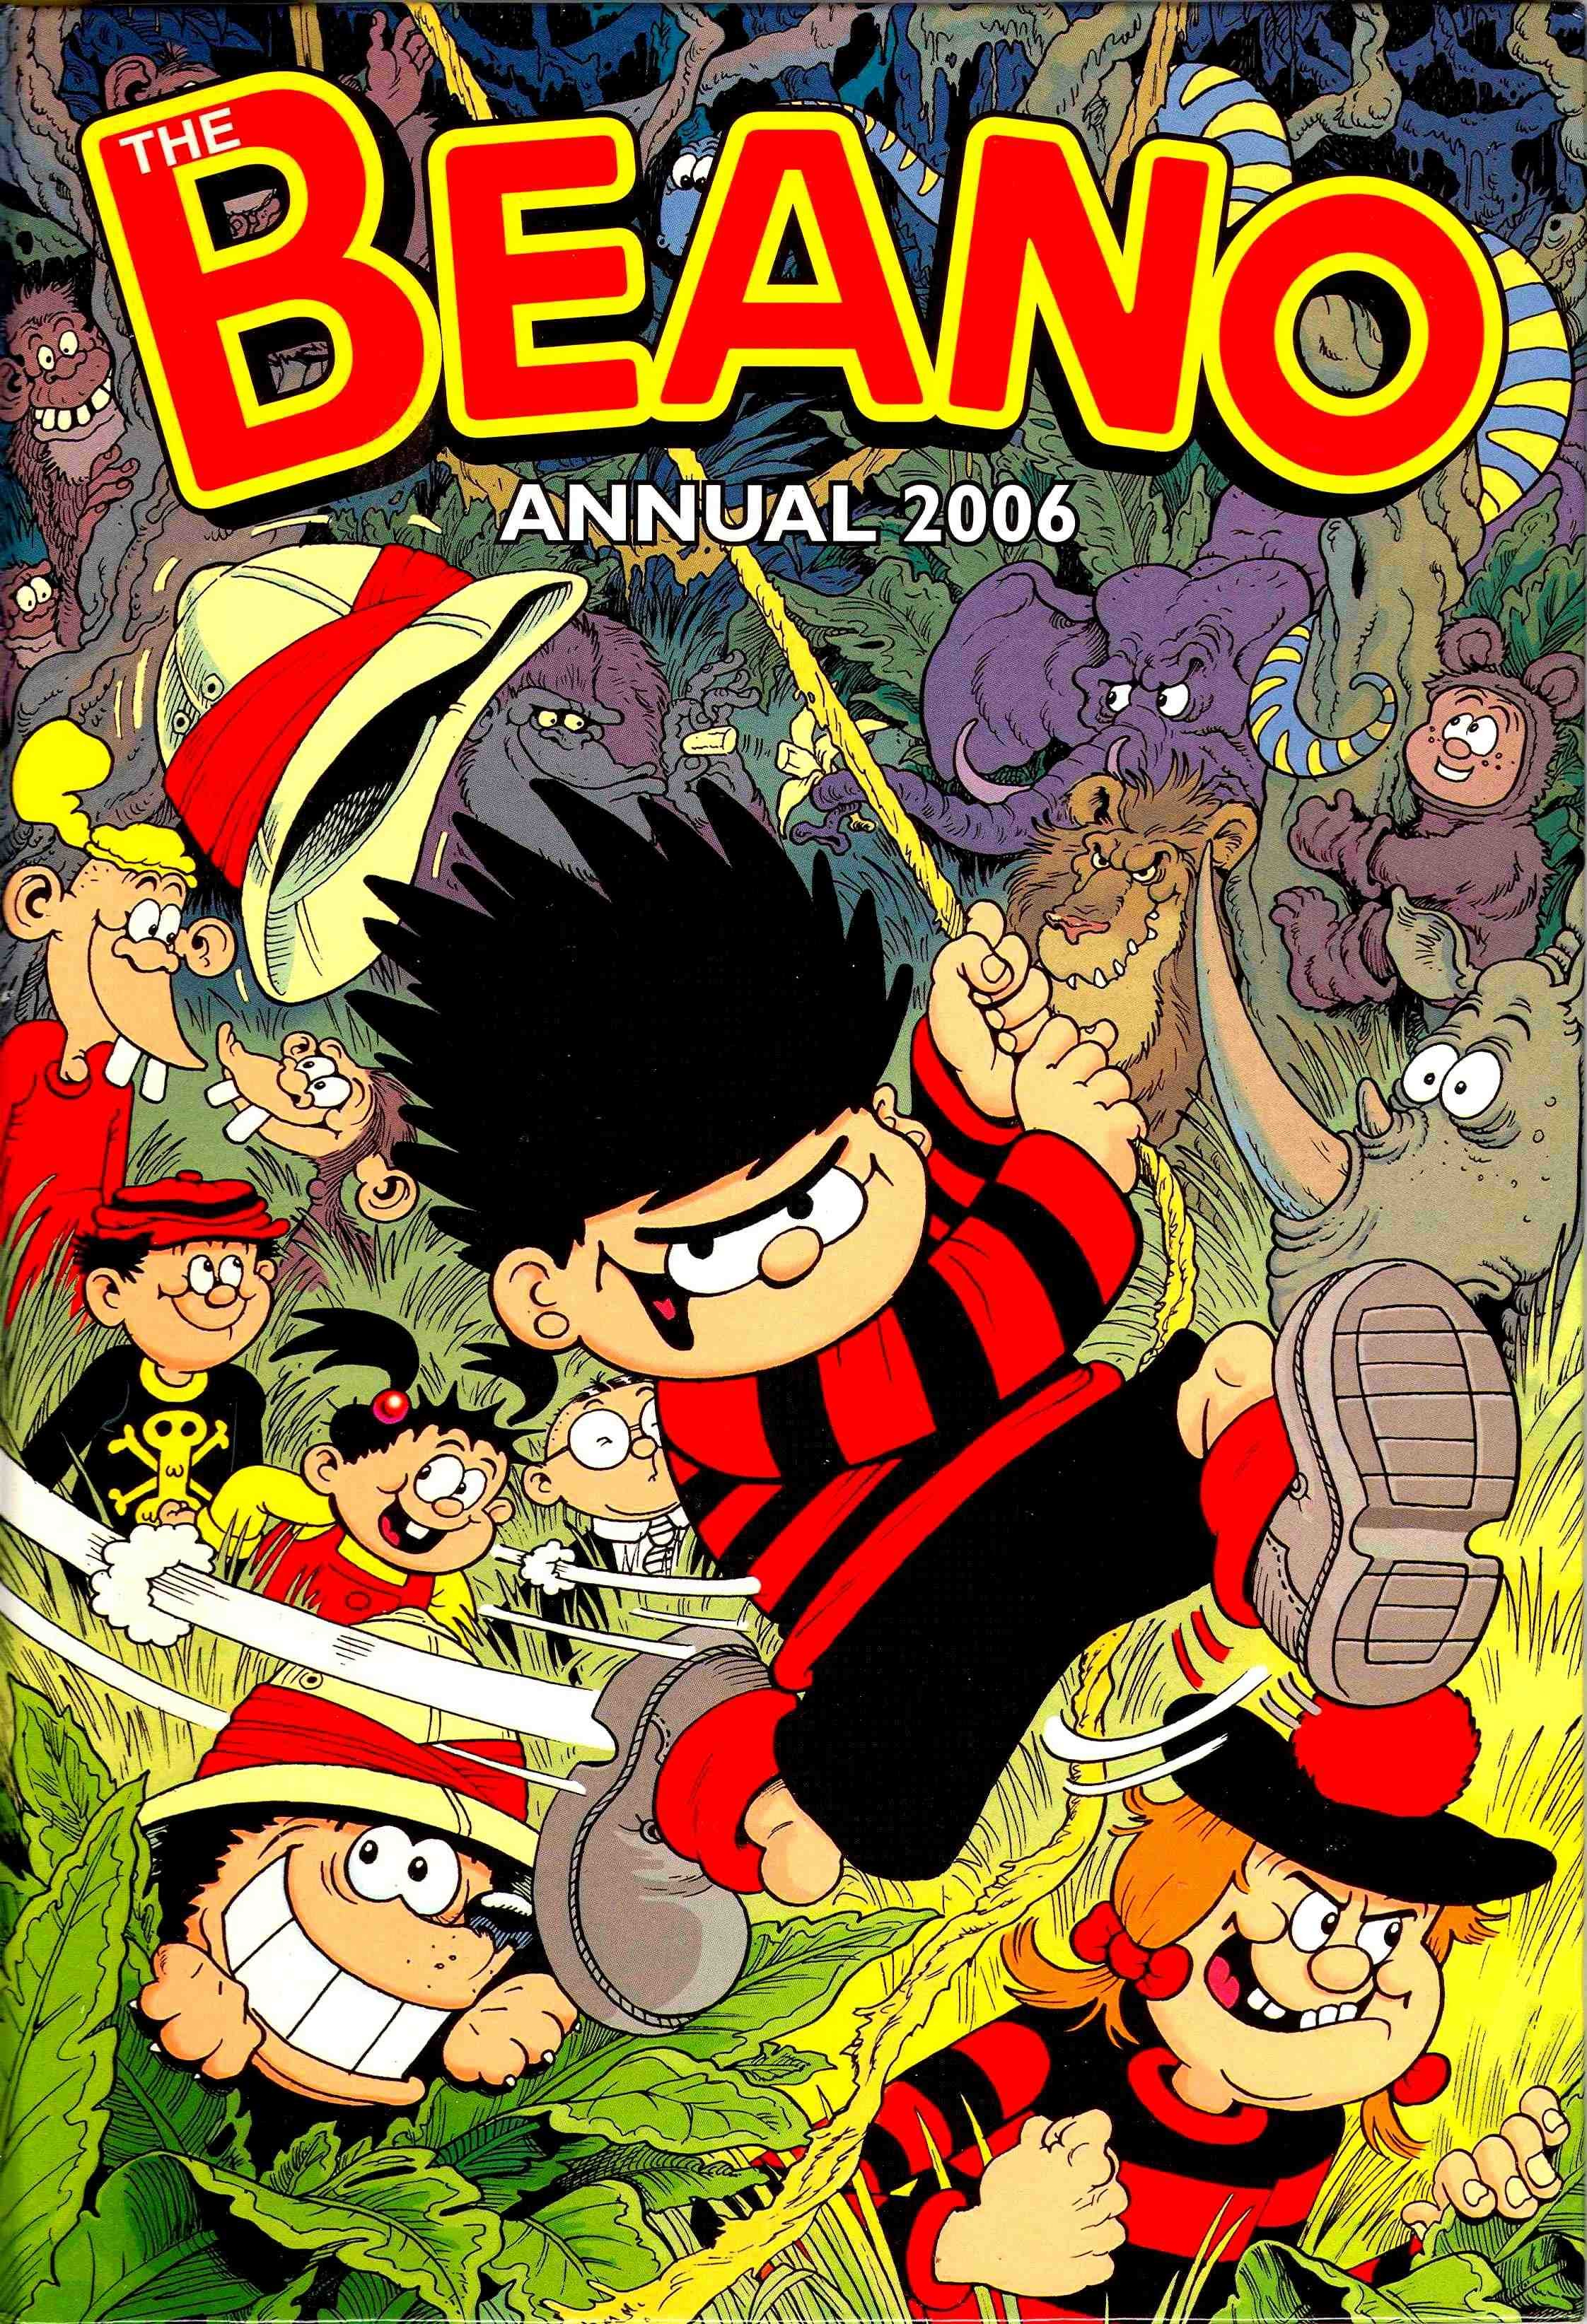 The Beano Book (Annual) 2006 Page 1